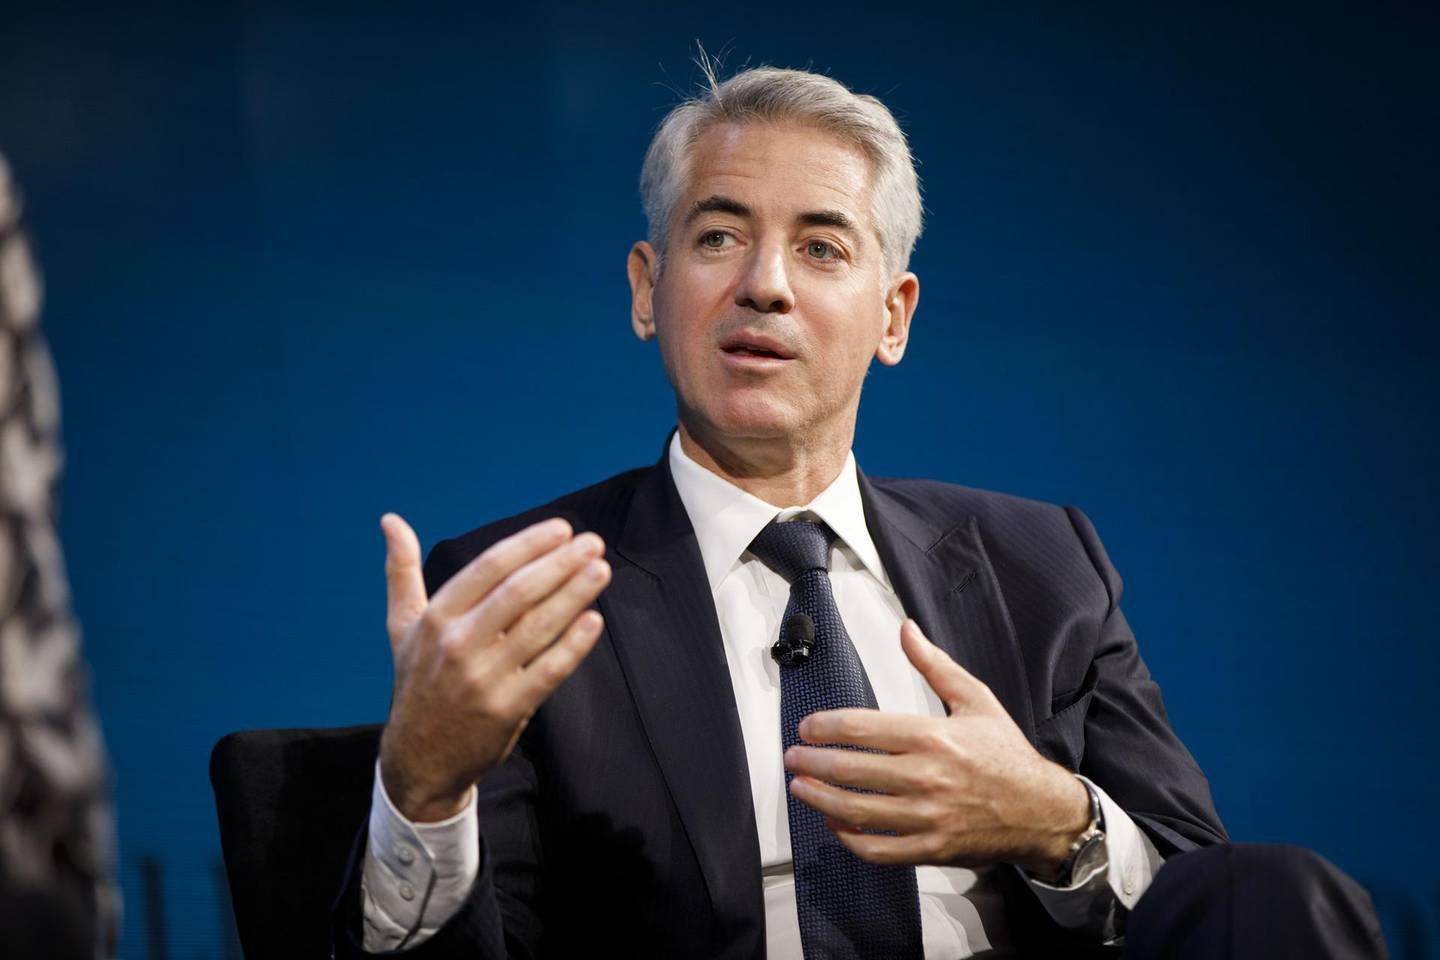 Bill Ackman, chief executive officer of Pershing Square Capital Management LP, speaks during the WSJ D.Live global technology conference in Laguna Beach, California, U.S., on Tuesday, Oct. 17, 2017. WSJ D.Live conference brings together CEOs, founders, investors, and luminaries to discuss the global technology environment and how to move the industry forward. Photographer: Patrick T. Fallon/Bloomberg